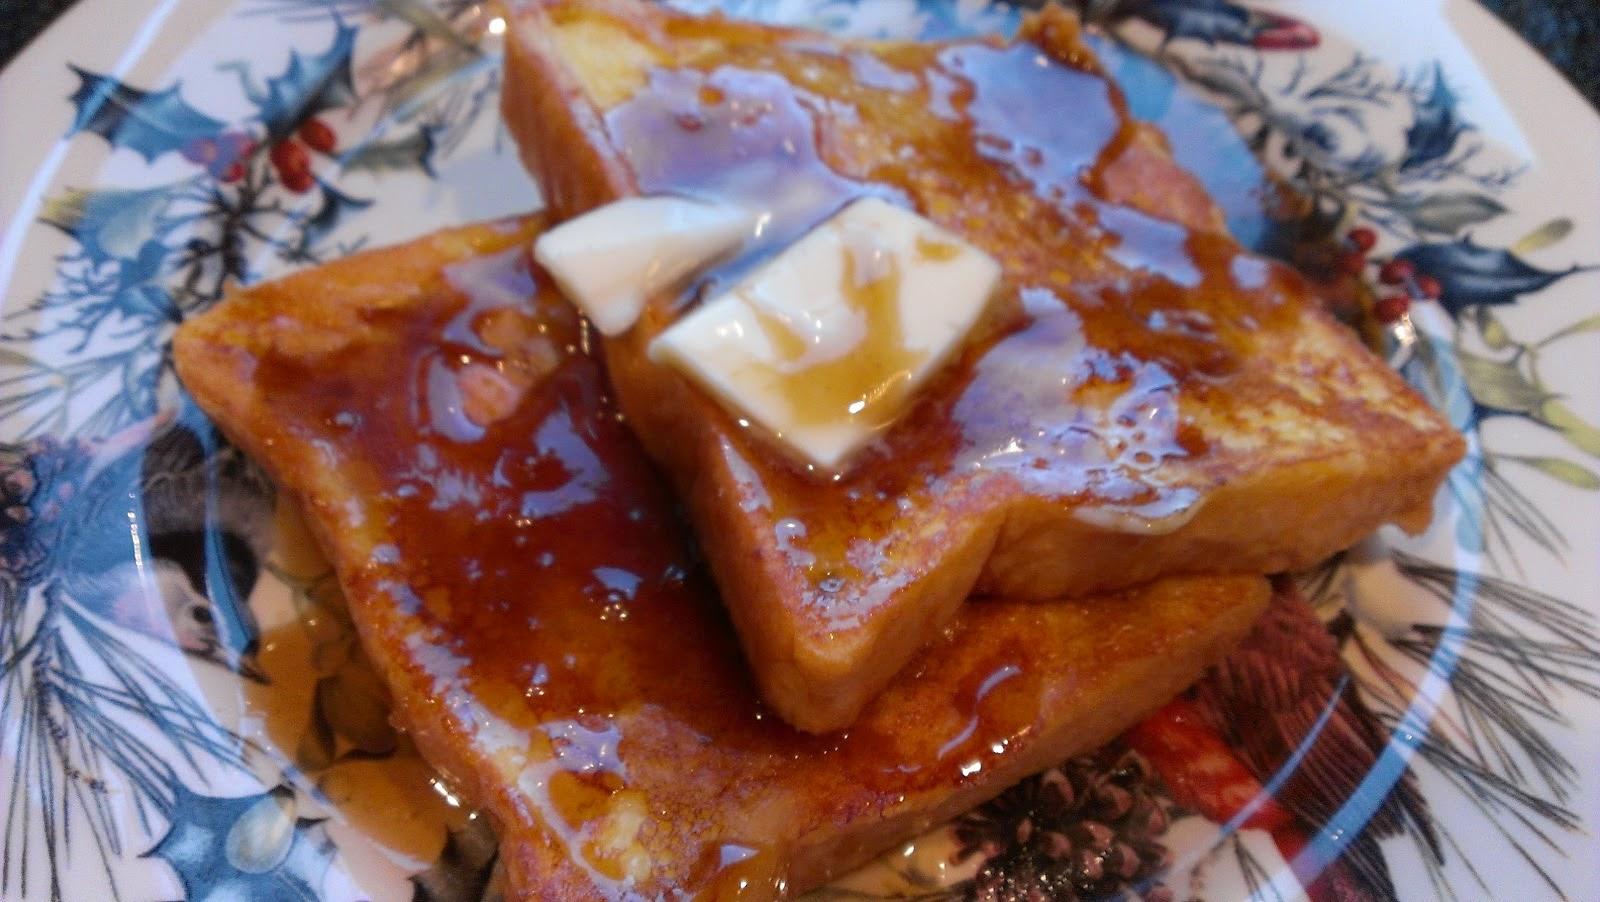 http://gotitcookit.blogspot.com/2012/12/egg-nog-french-toast-with-butter-rum.html